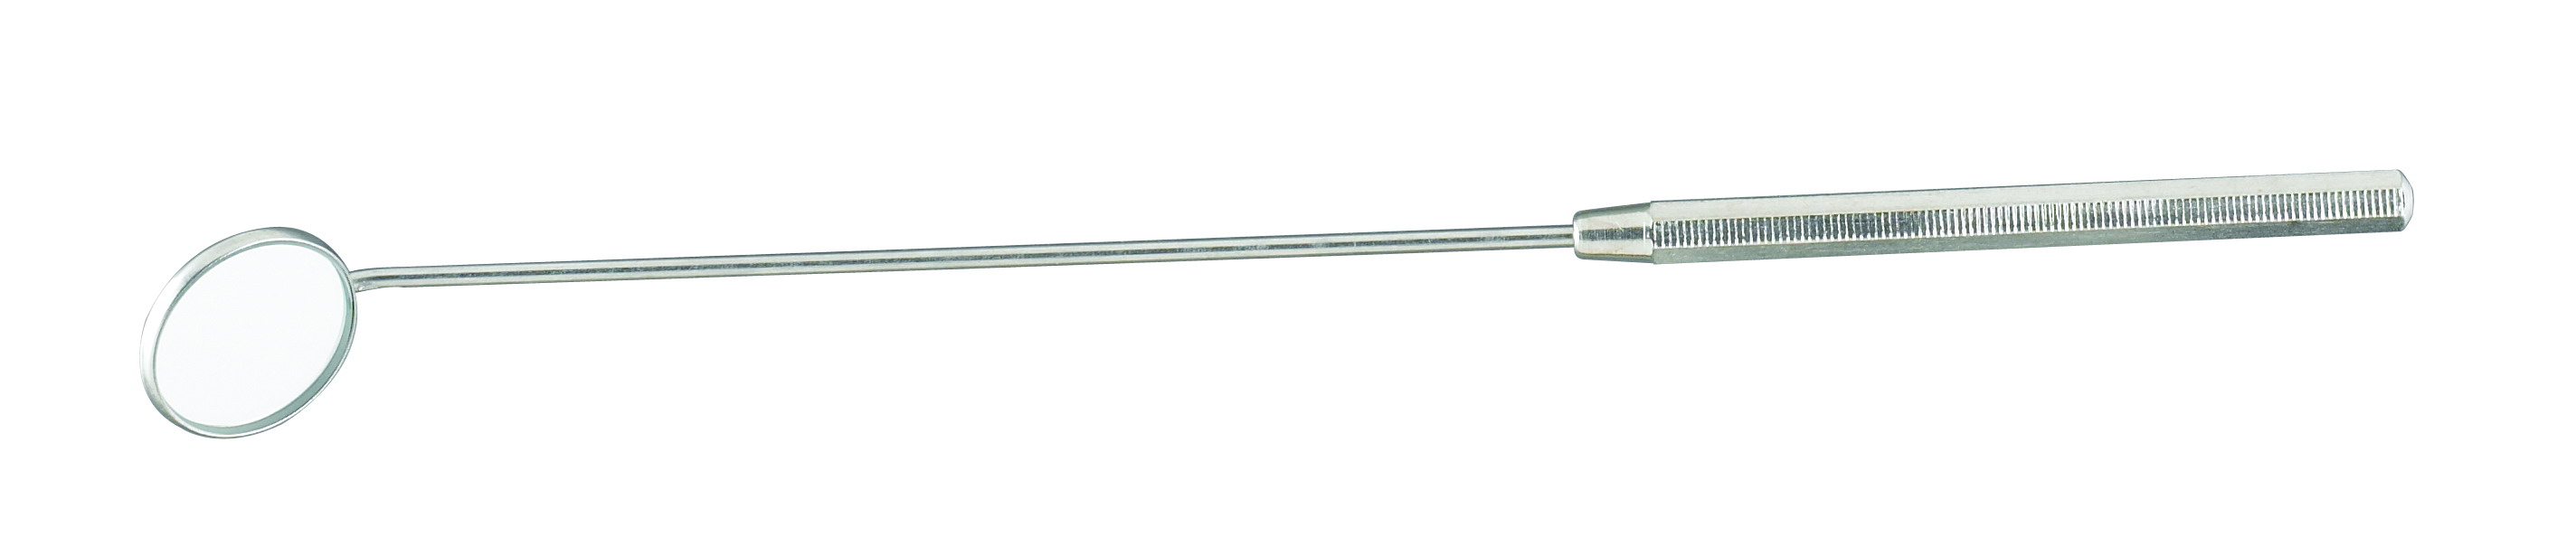 laryngeal-mirror-size-3-with-octagon-threaded-handle-20-mm-23-10-3-miltex.jpg